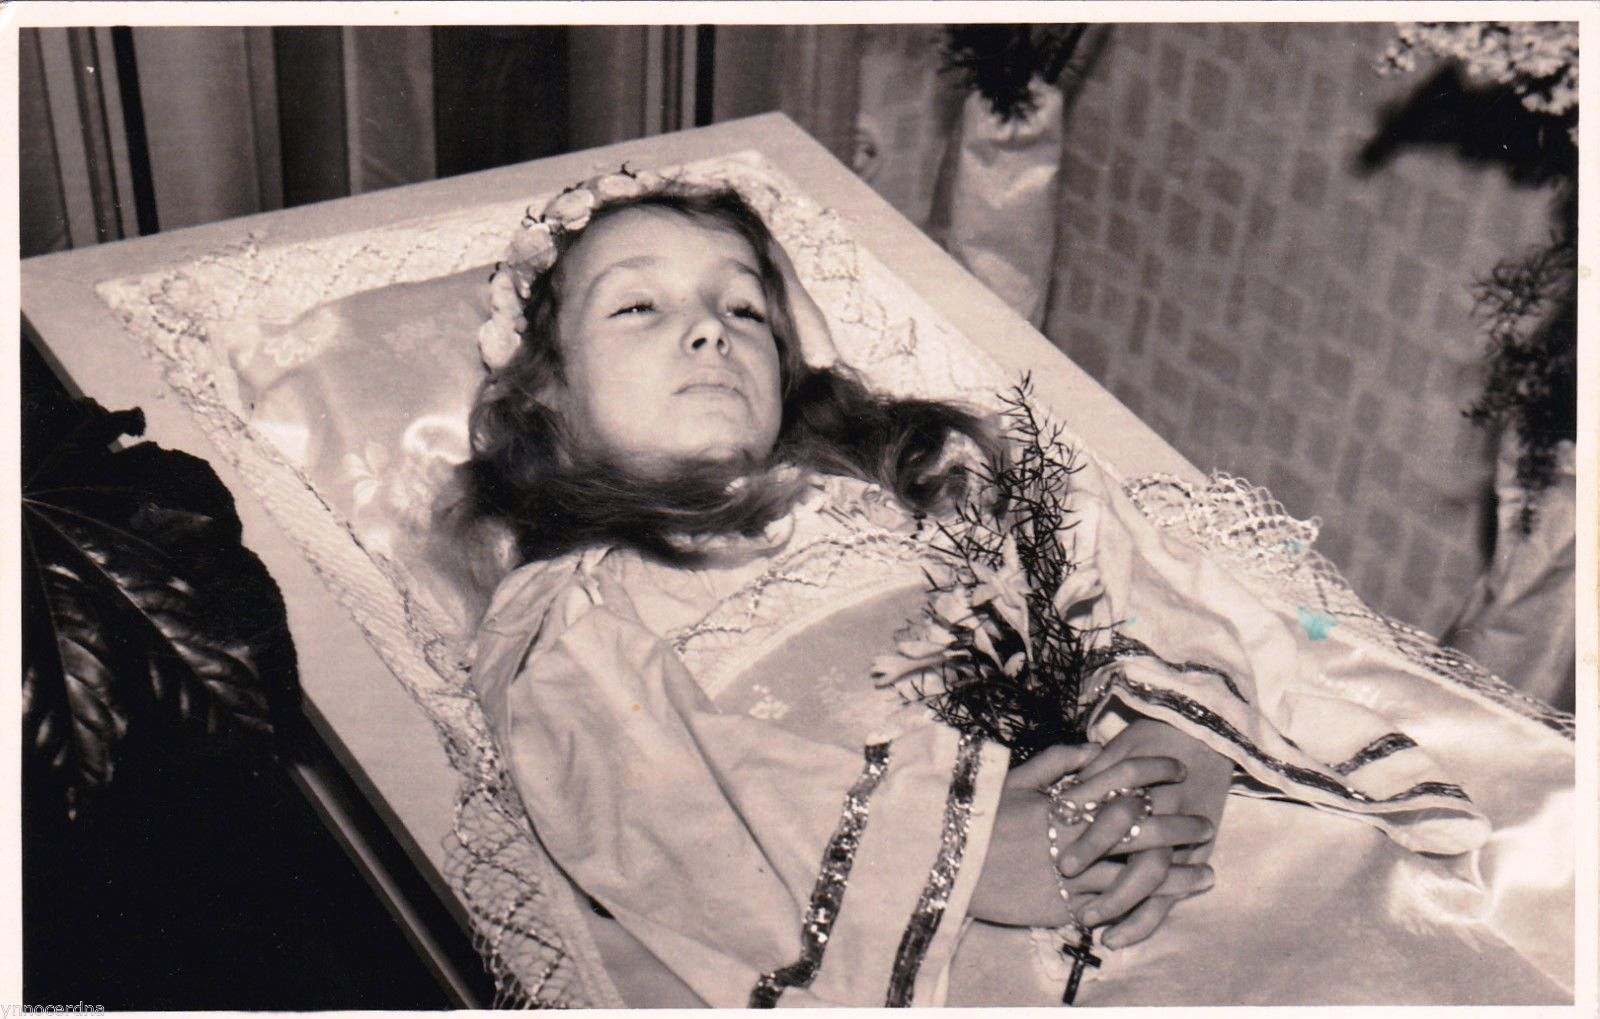 Germany, ca. 50ies or 60ies, dead little girl in her coffin